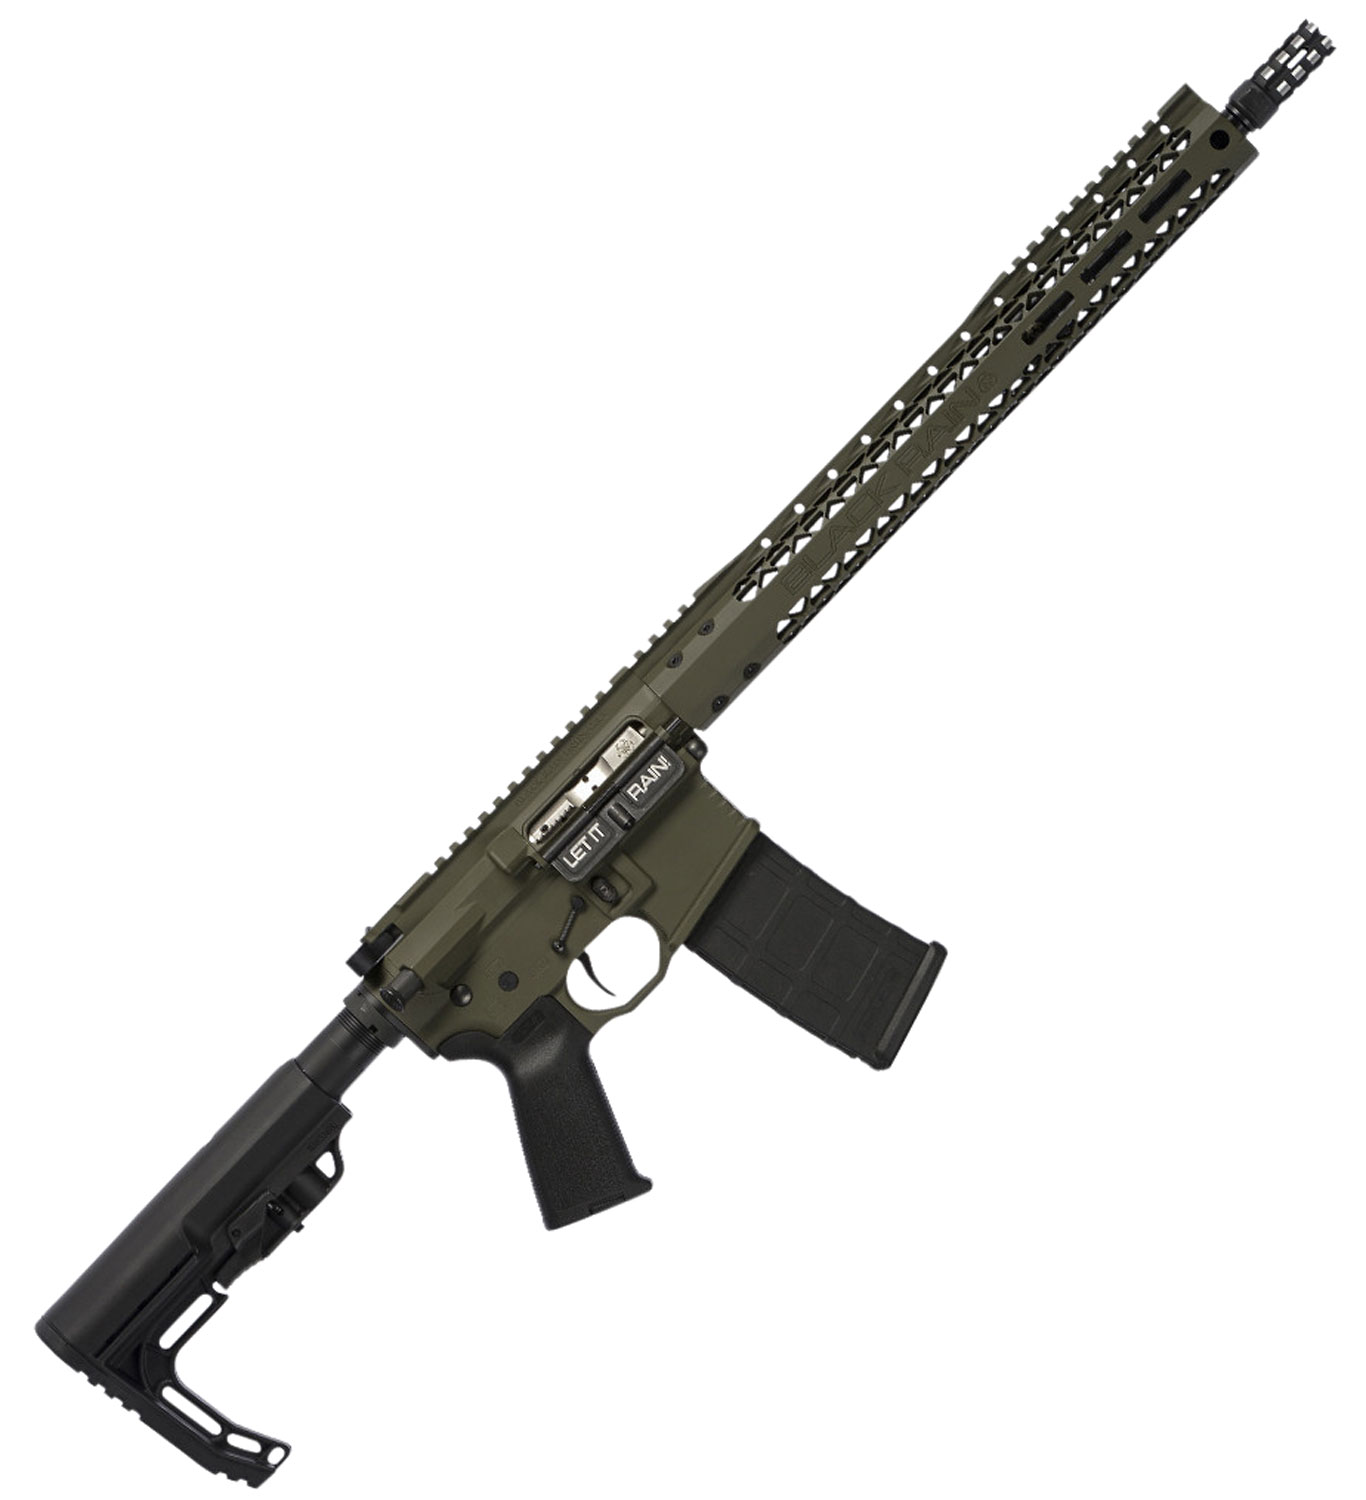 Black Rain BROSCOUTOD Recon BRO Scout Semi-Automatic 223 Remington/5.56 NATO 16